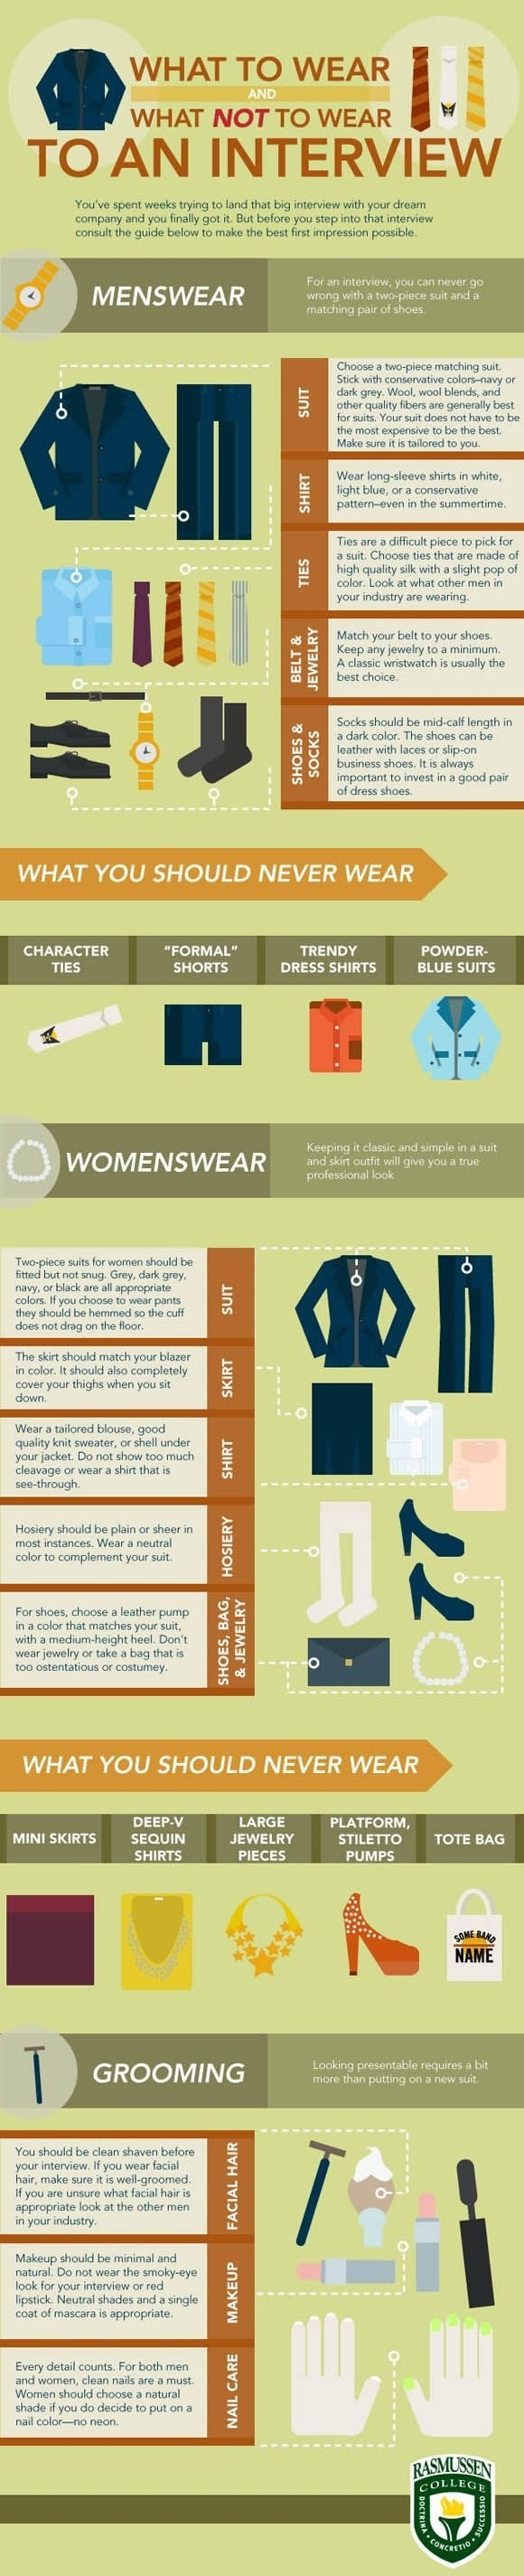 Wondering what to wear for your big interview? Check out this infographic for some helpful hints to help you pick your outfit. Then look at